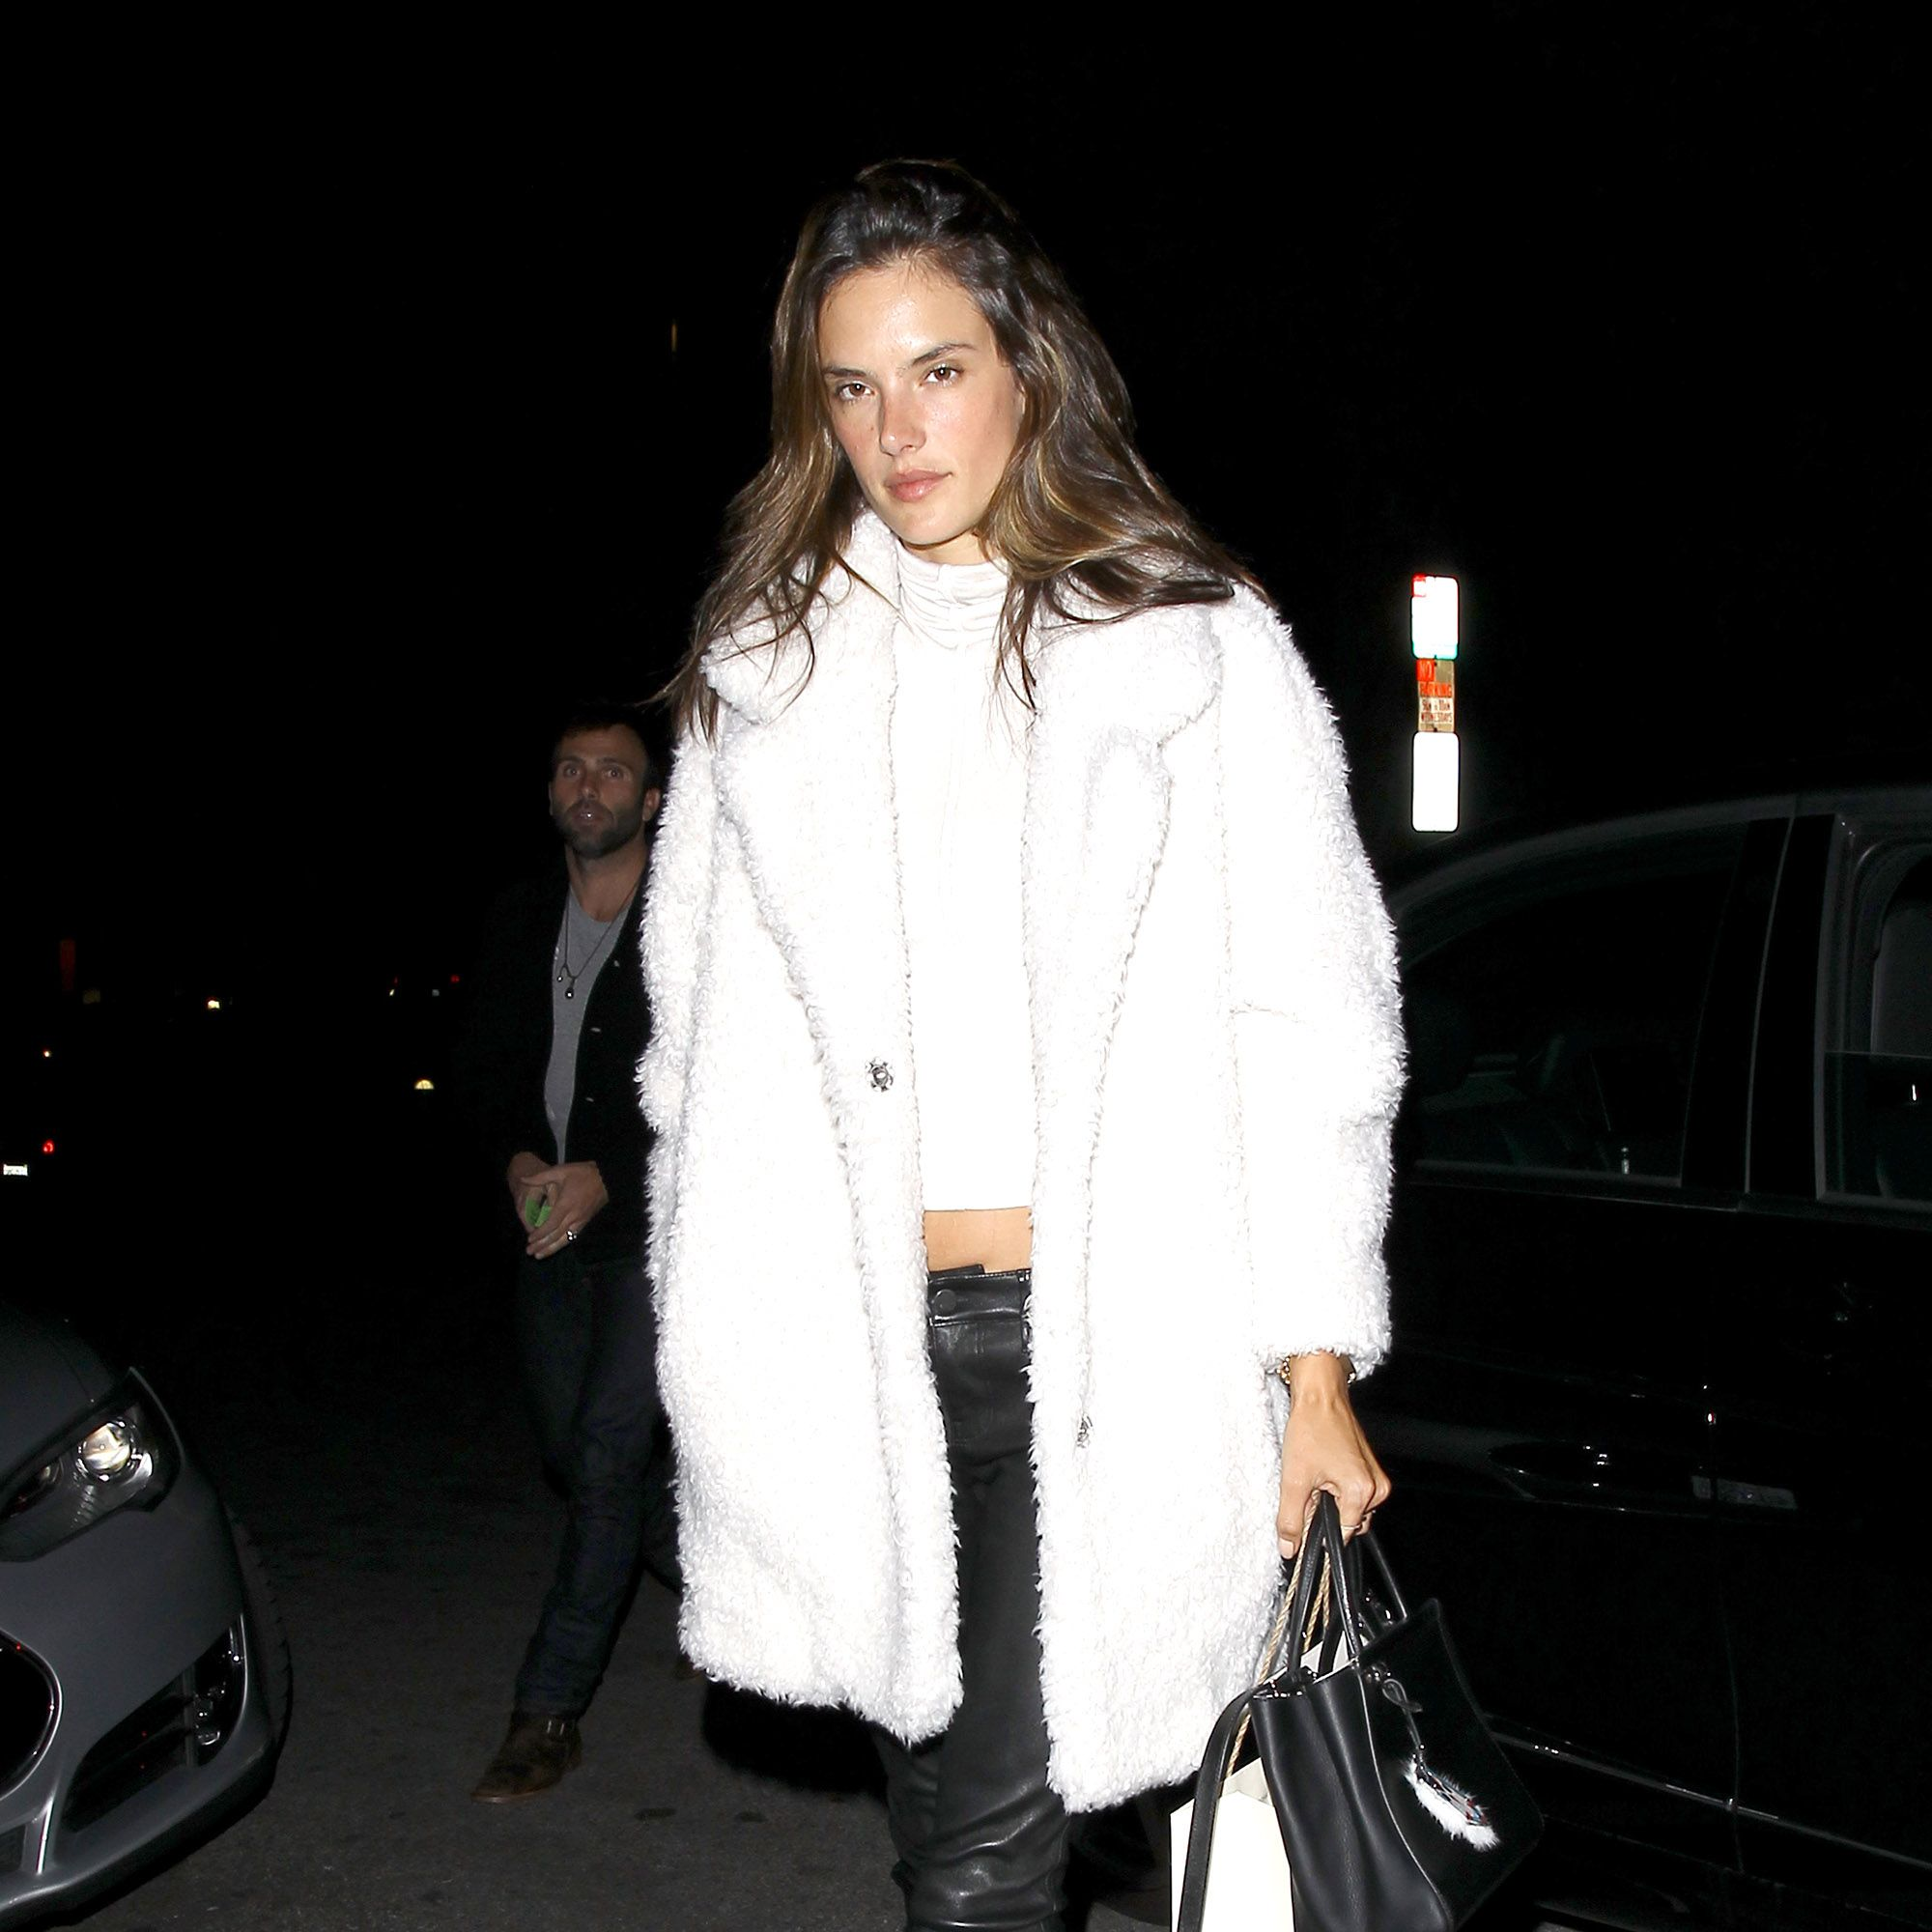 "**NO Australia, New Zealand** West Hollywood, CA - Alessandra Ambrosio and her boyfriend Jamie Mazur leaving ""Kings of Leon"" frontman Caleb Followill's star-studded birthday party celebrated at the ""Sunset Marquis"" hotel in West Hollywood. **NO Australia, New Zealand** &#xA&#x3B;&#xA&#x3B;AKM-GSI          January 14, 2015&#xA&#x3B;&#xA&#x3B;**NO Australia, New Zealand**&#xA&#x3B;&#xA&#x3B;To License These Photos, Please Contact :&#xA&#x3B;&#xA&#x3B;Steve Ginsburg&#xA&#x3B;(310) 505-8447&#xA&#x3B;(323) 423-9397&#xA&#x3B;steve@akmgsi.com&#xA&#x3B;sales@akmgsi.com&#xA&#x3B;&#xA&#x3B;or&#xA&#x3B;&#xA&#x3B;Maria Buda&#xA&#x3B;(917) 242-1505&#xA&#x3B;mbuda@akmgsi.com&#xA&#x3B;ginsburgspalyinc@gmail.com8"